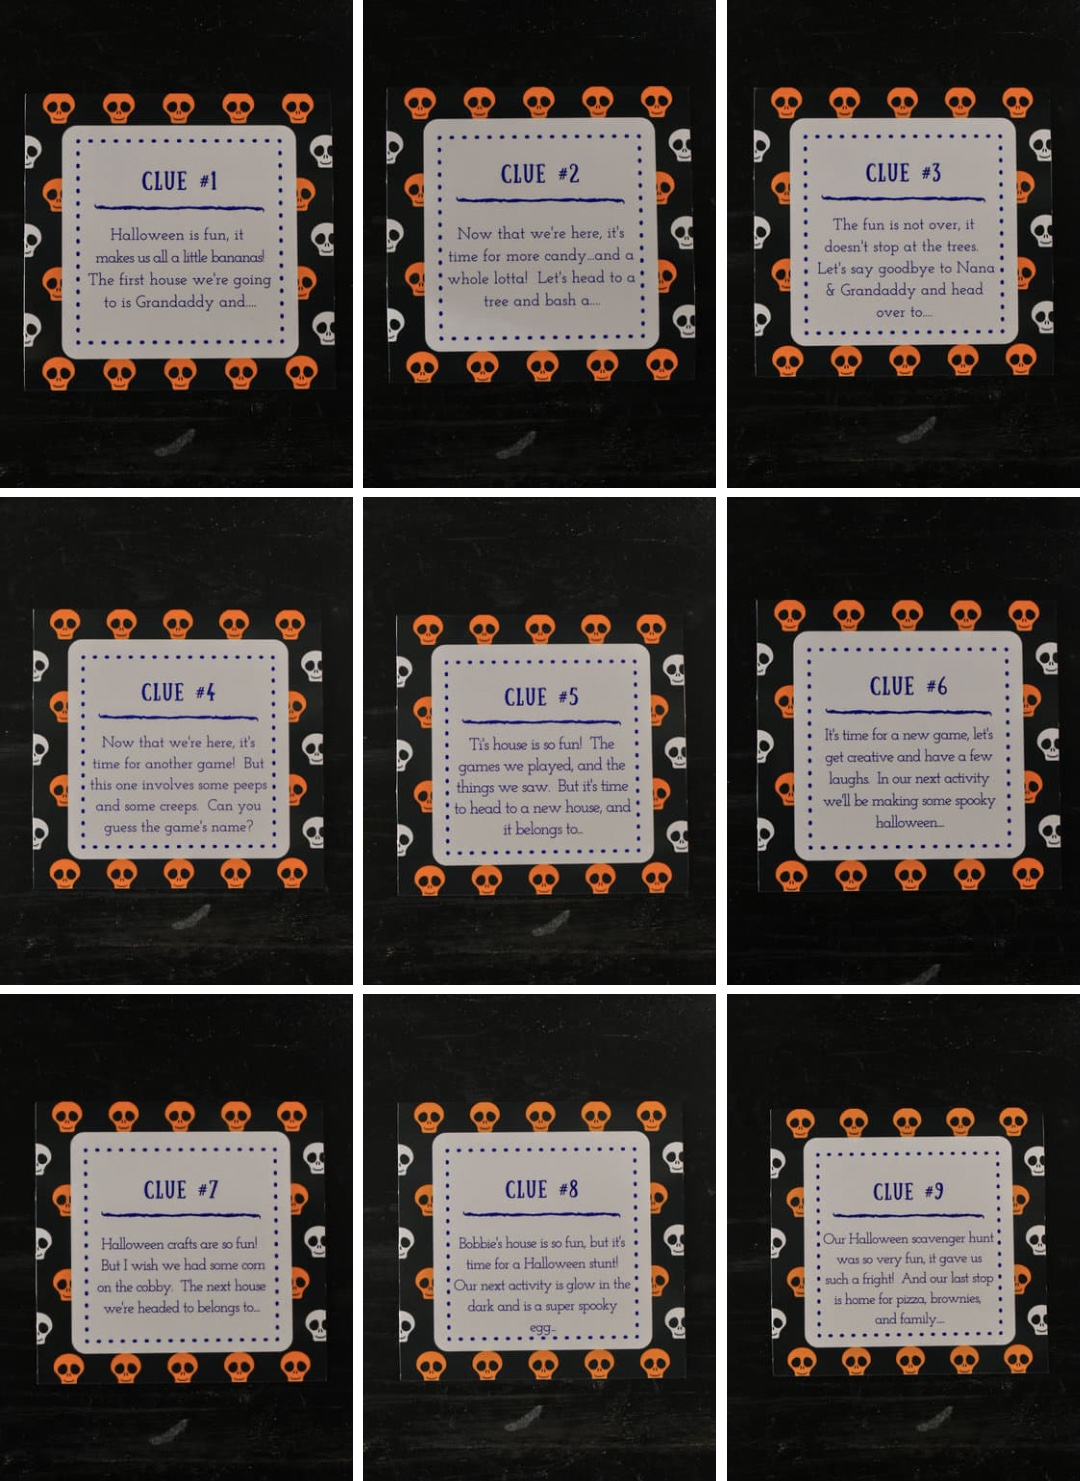 Scavenger hunt cards made from Canva with clues for the Halloween 2020 hunt.